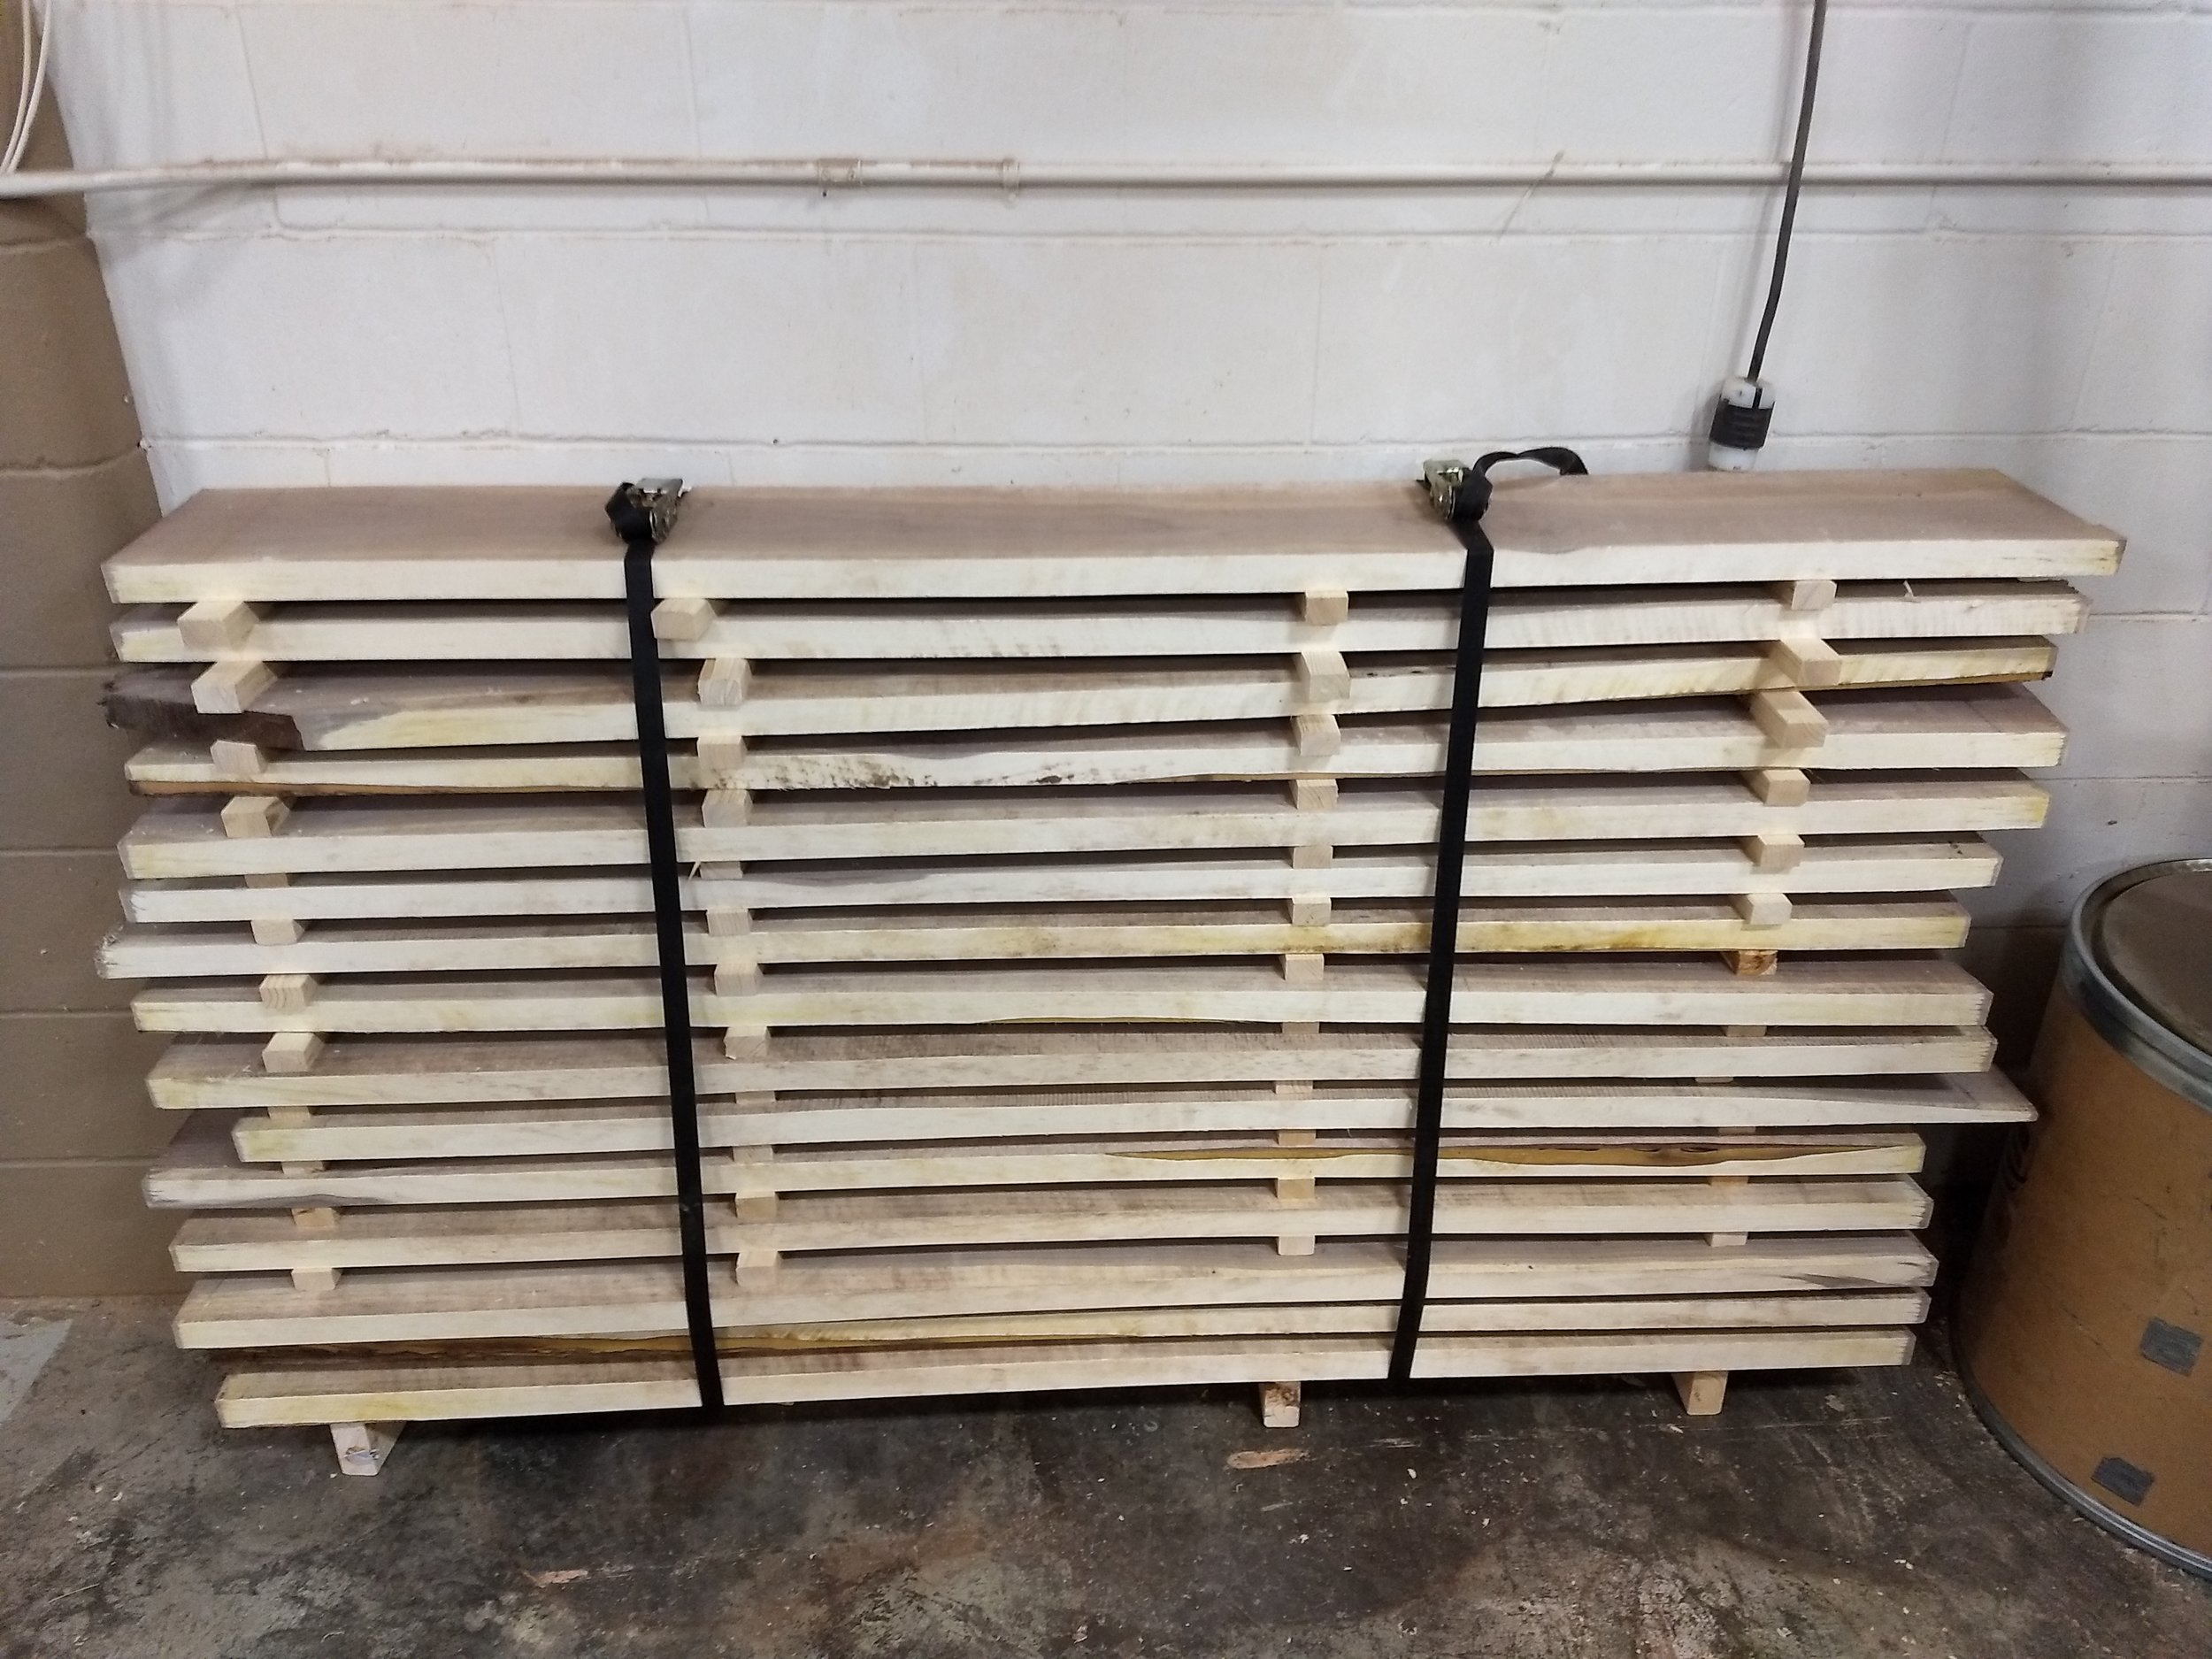 Cut boards stacked to dry